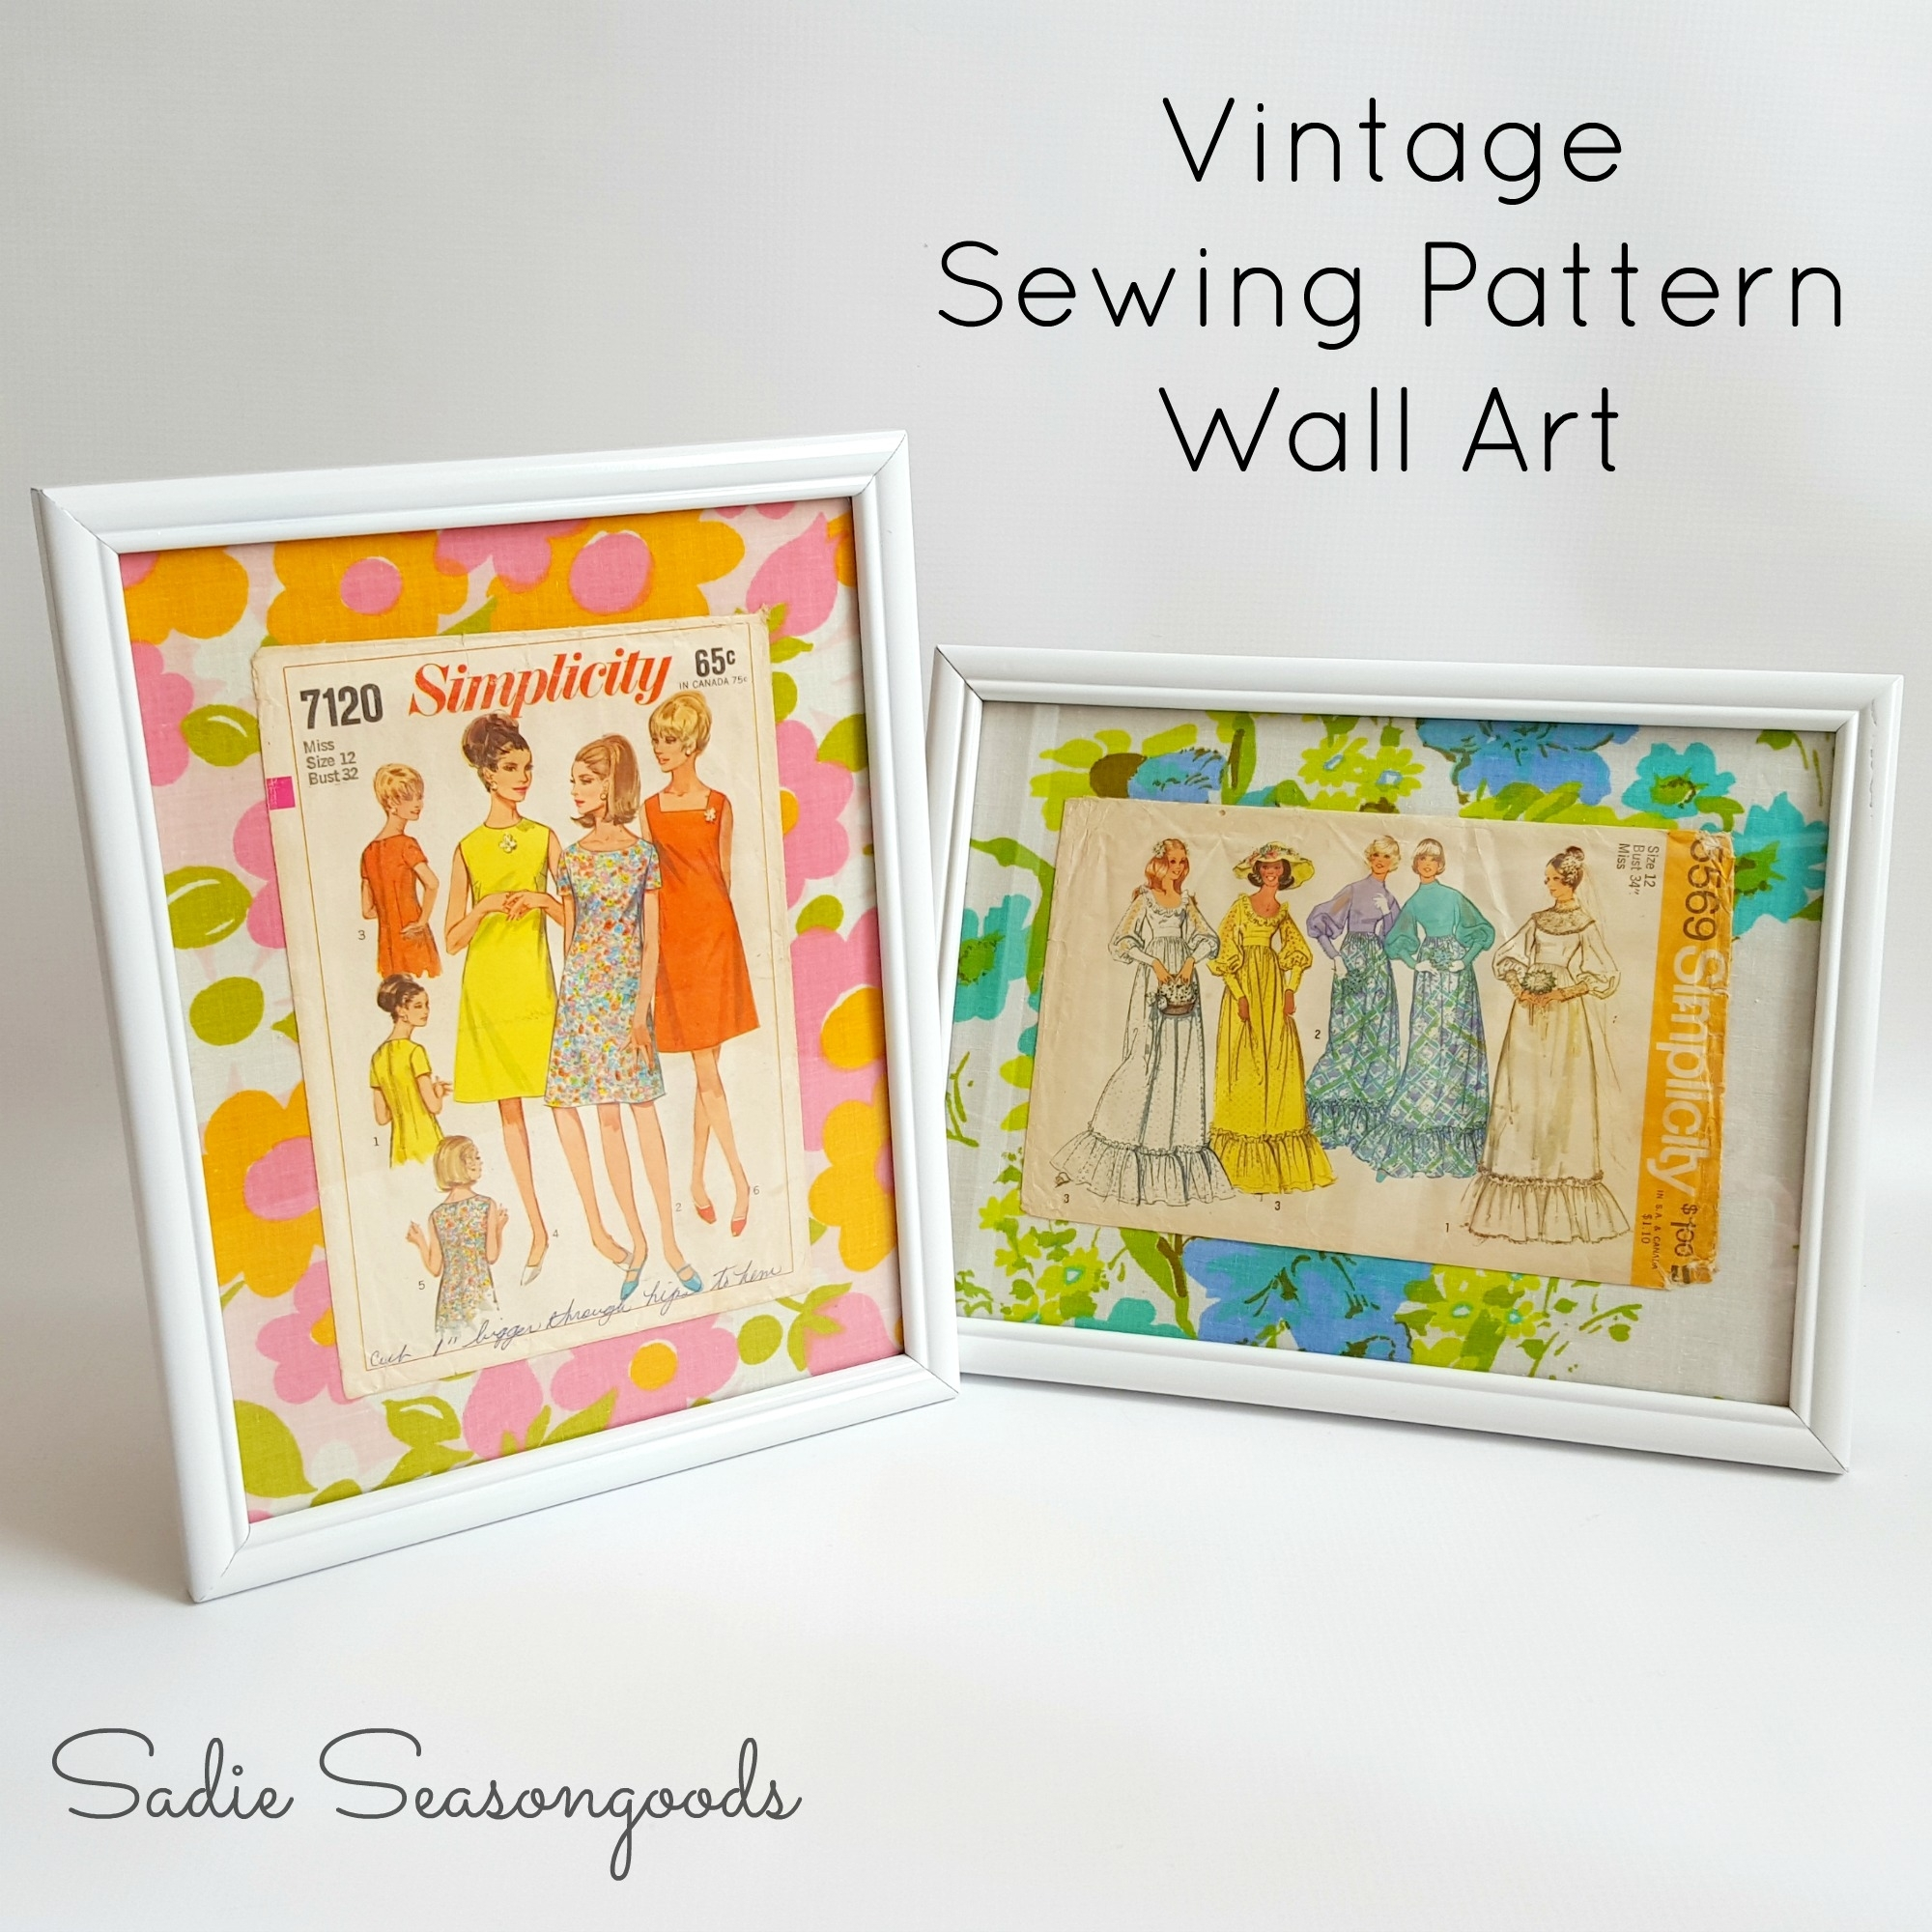 Fashion Wall Art Using Repurposed Vintage Sewing Patterns Intended For Recent Fabric Dress Wall Art (View 12 of 15)